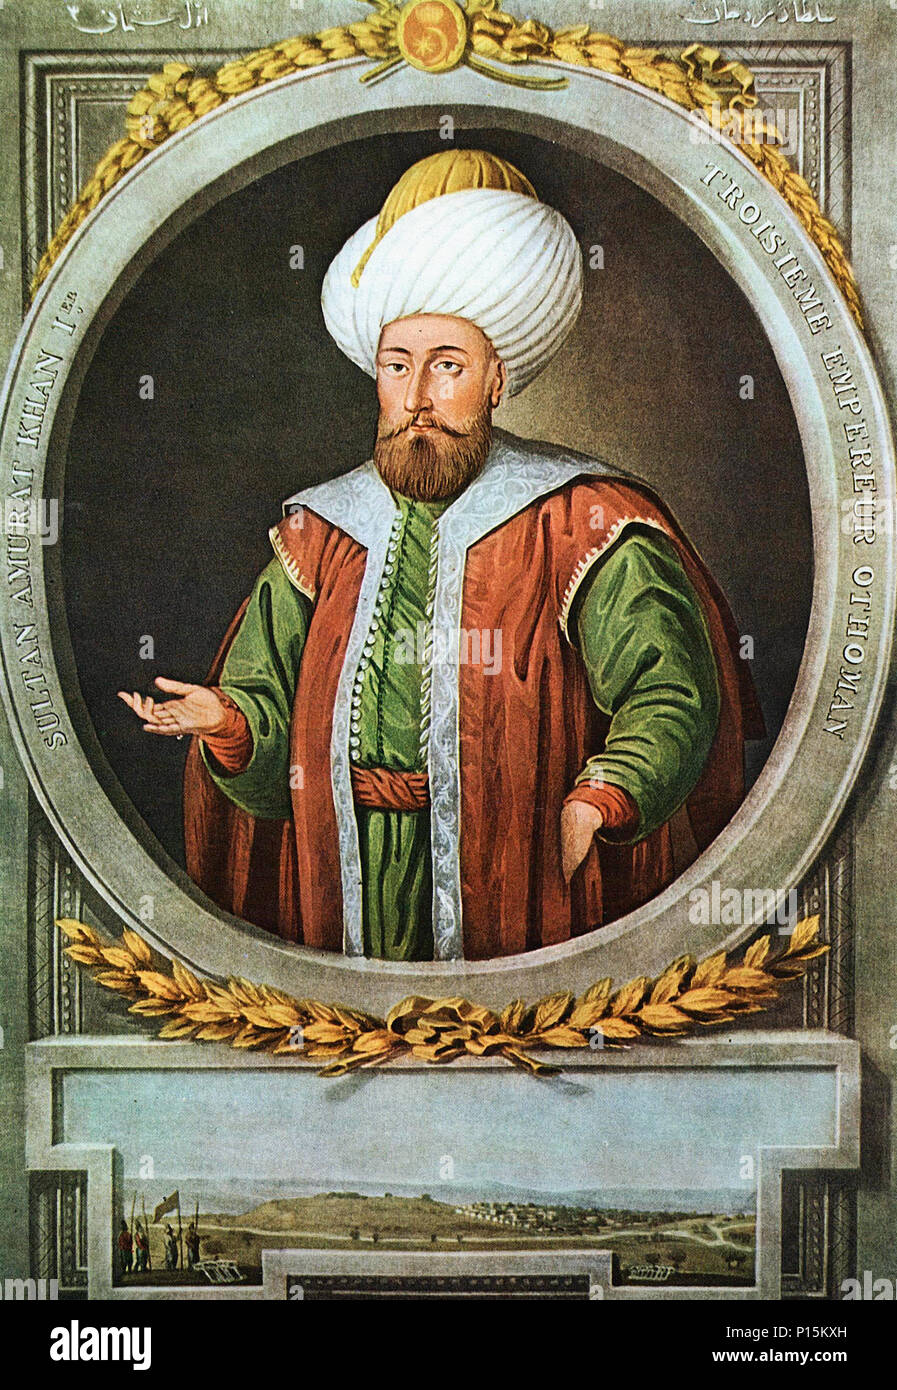 Murad I was the Ottoman Sultan from 1362 to 1389. - Stock Image